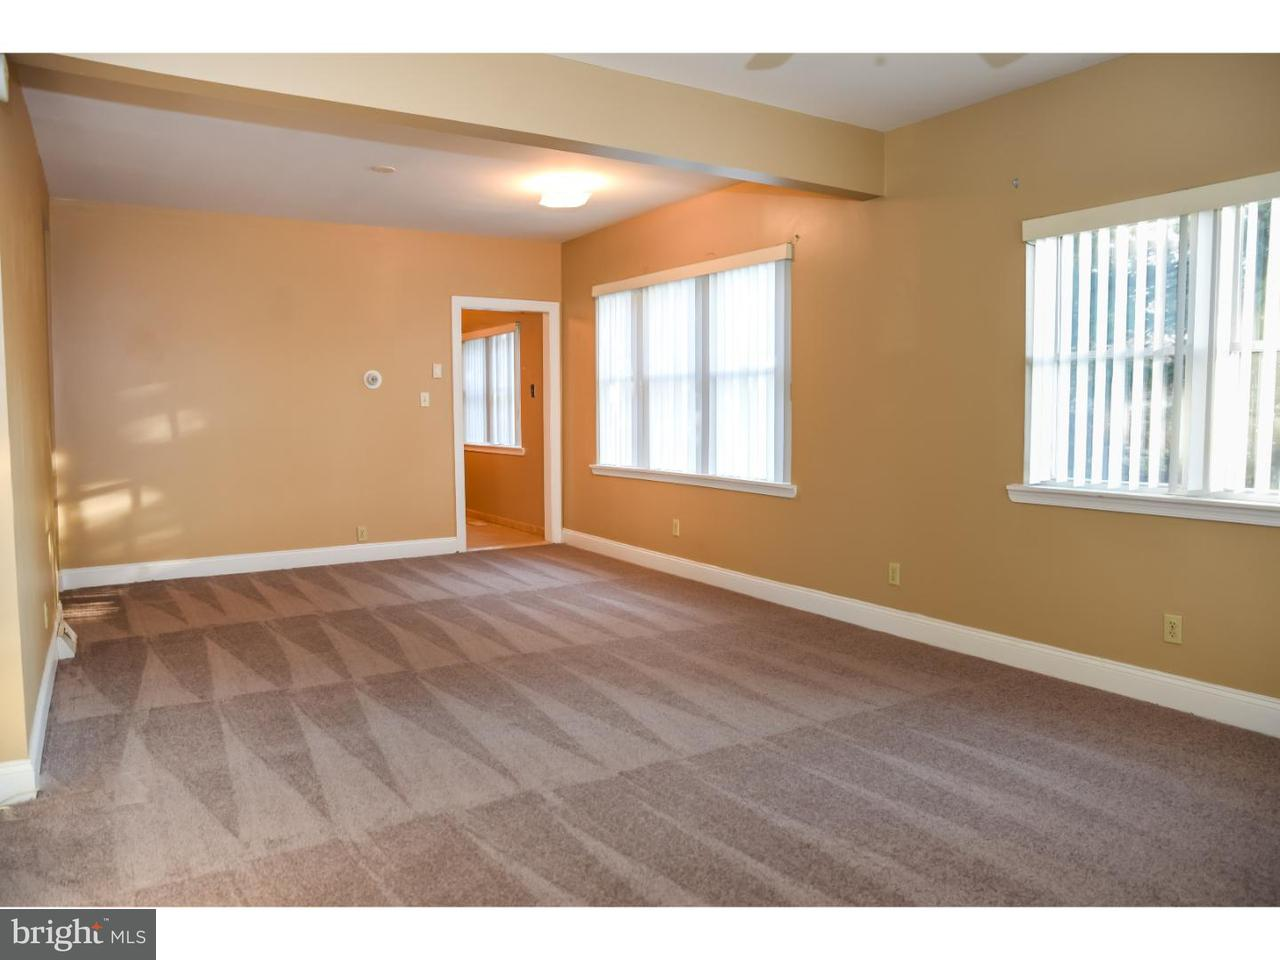 Single Family Home for Rent at 2452 HOPEWELL RD #A Berlin, New Jersey 08009 United States